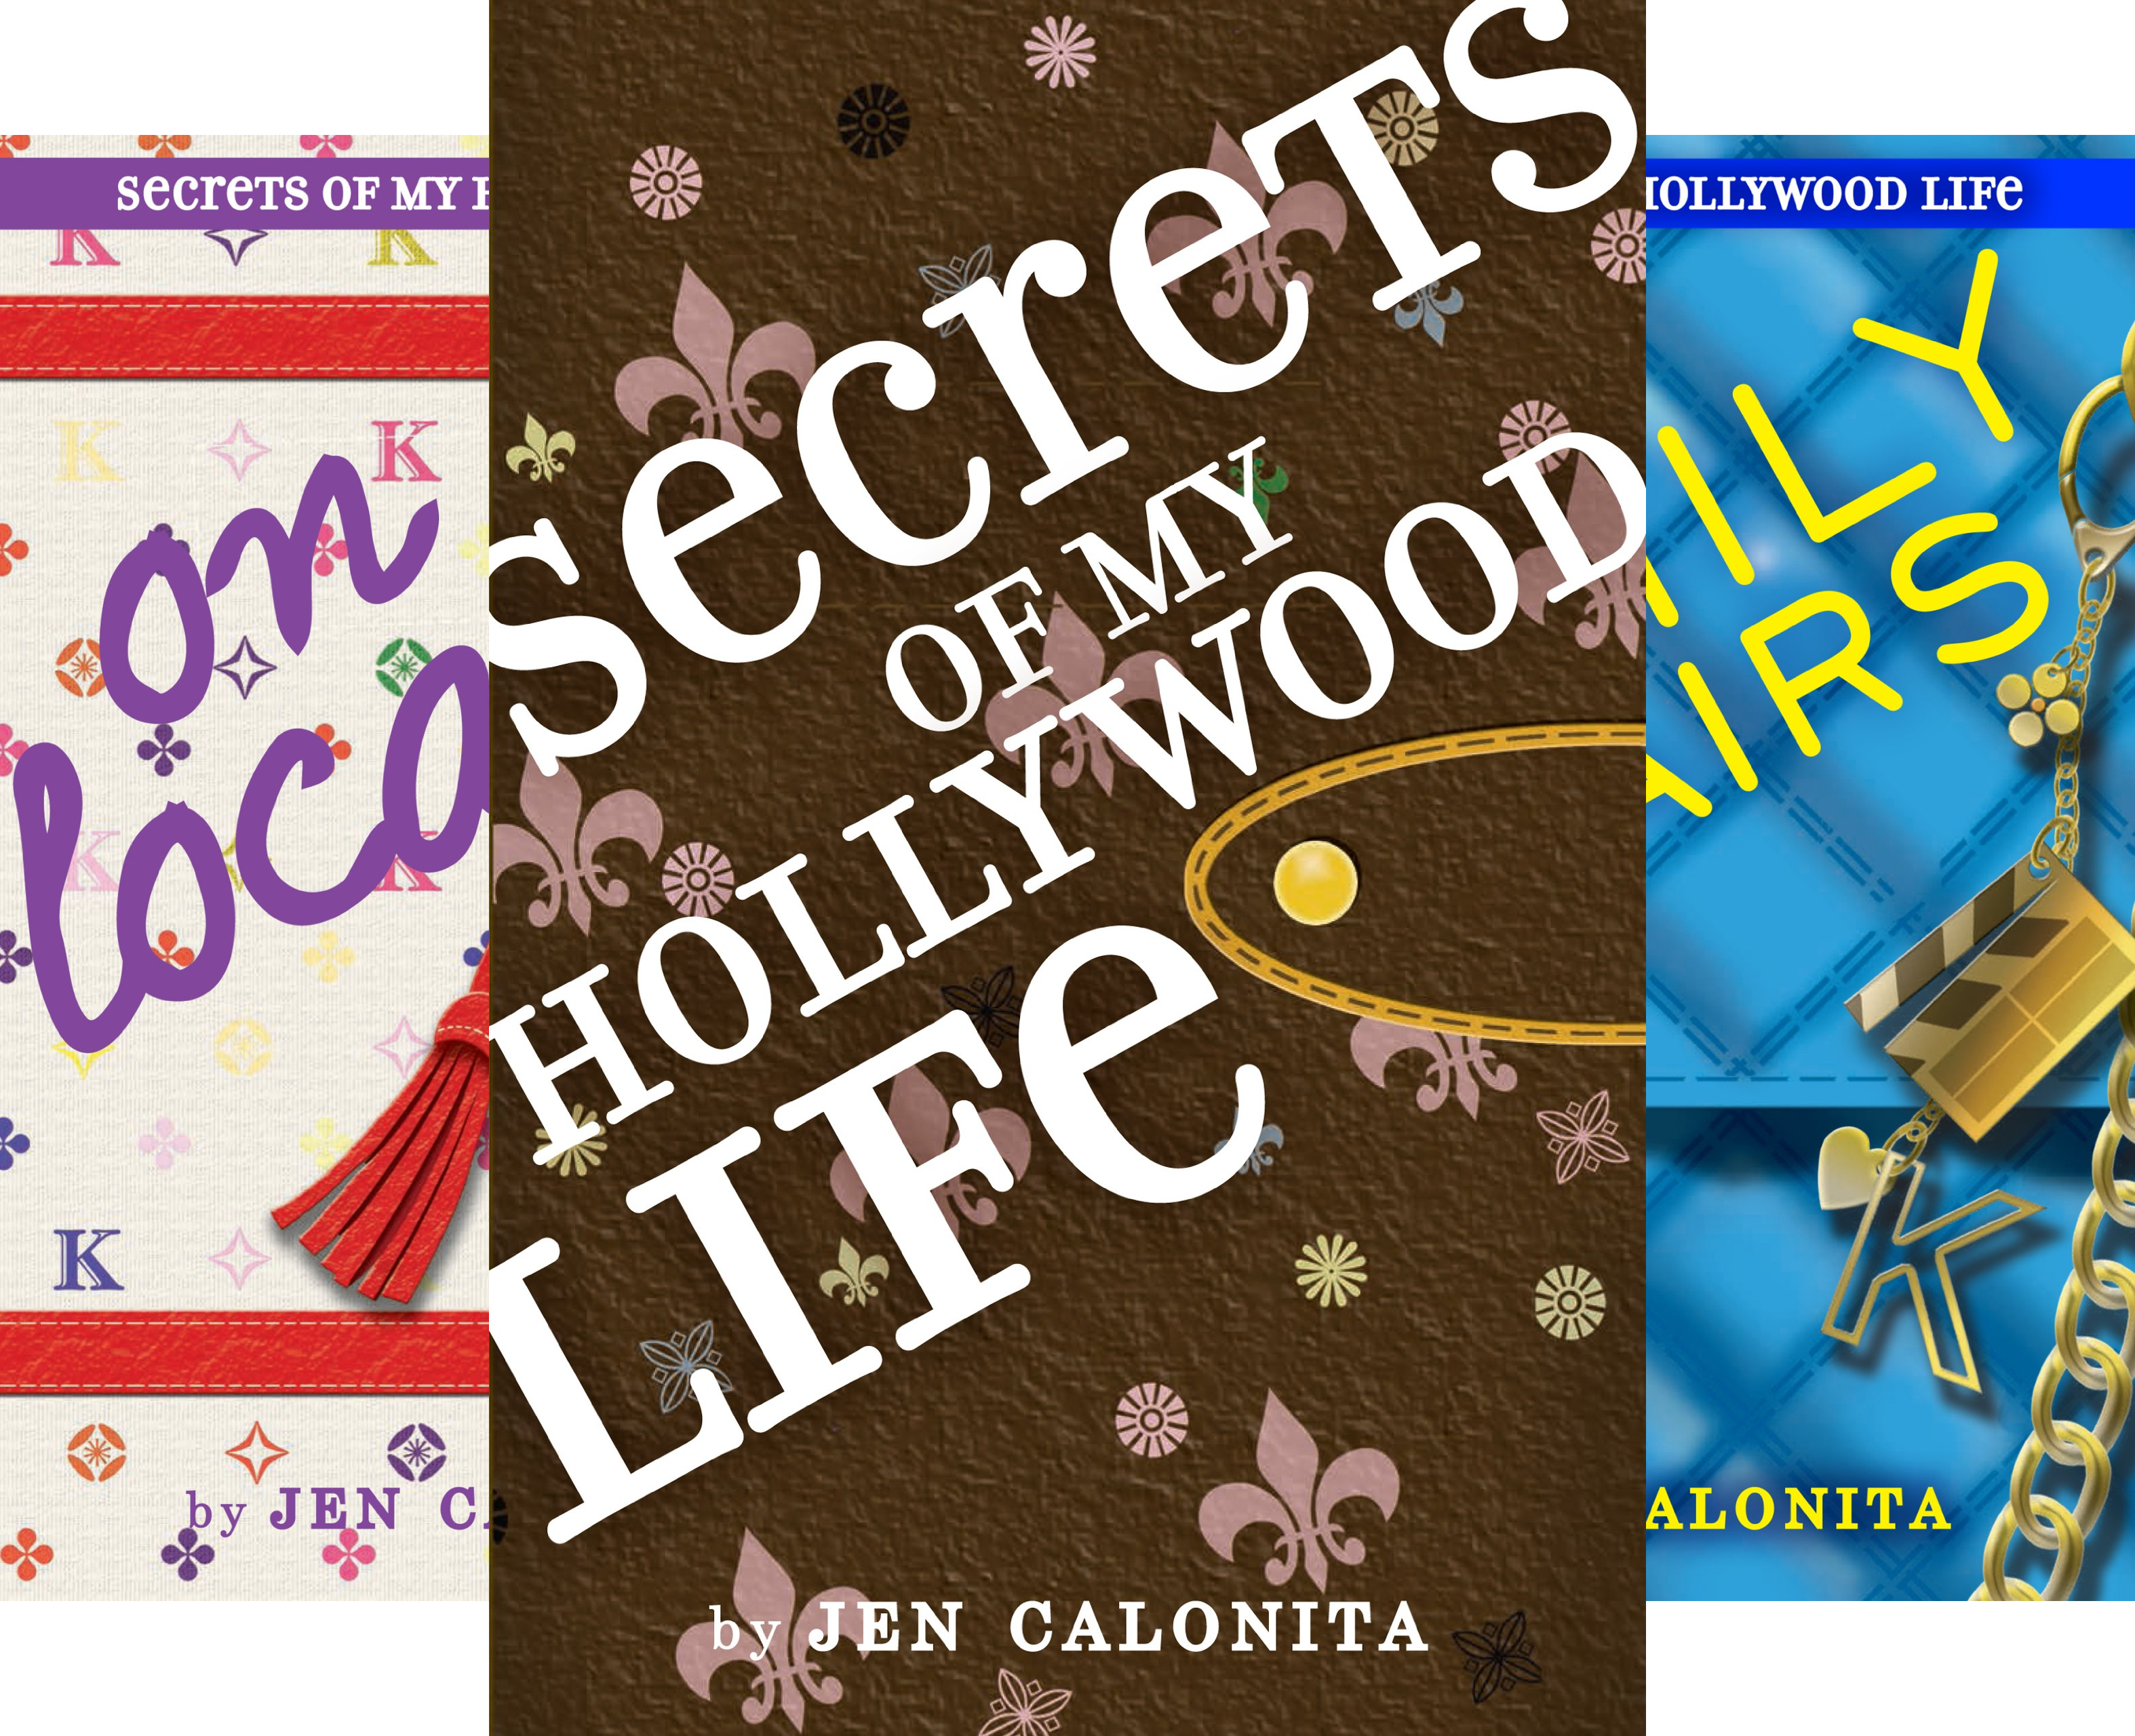 Download Secrets of My Hollywood Life (6 Book Series) Pdf